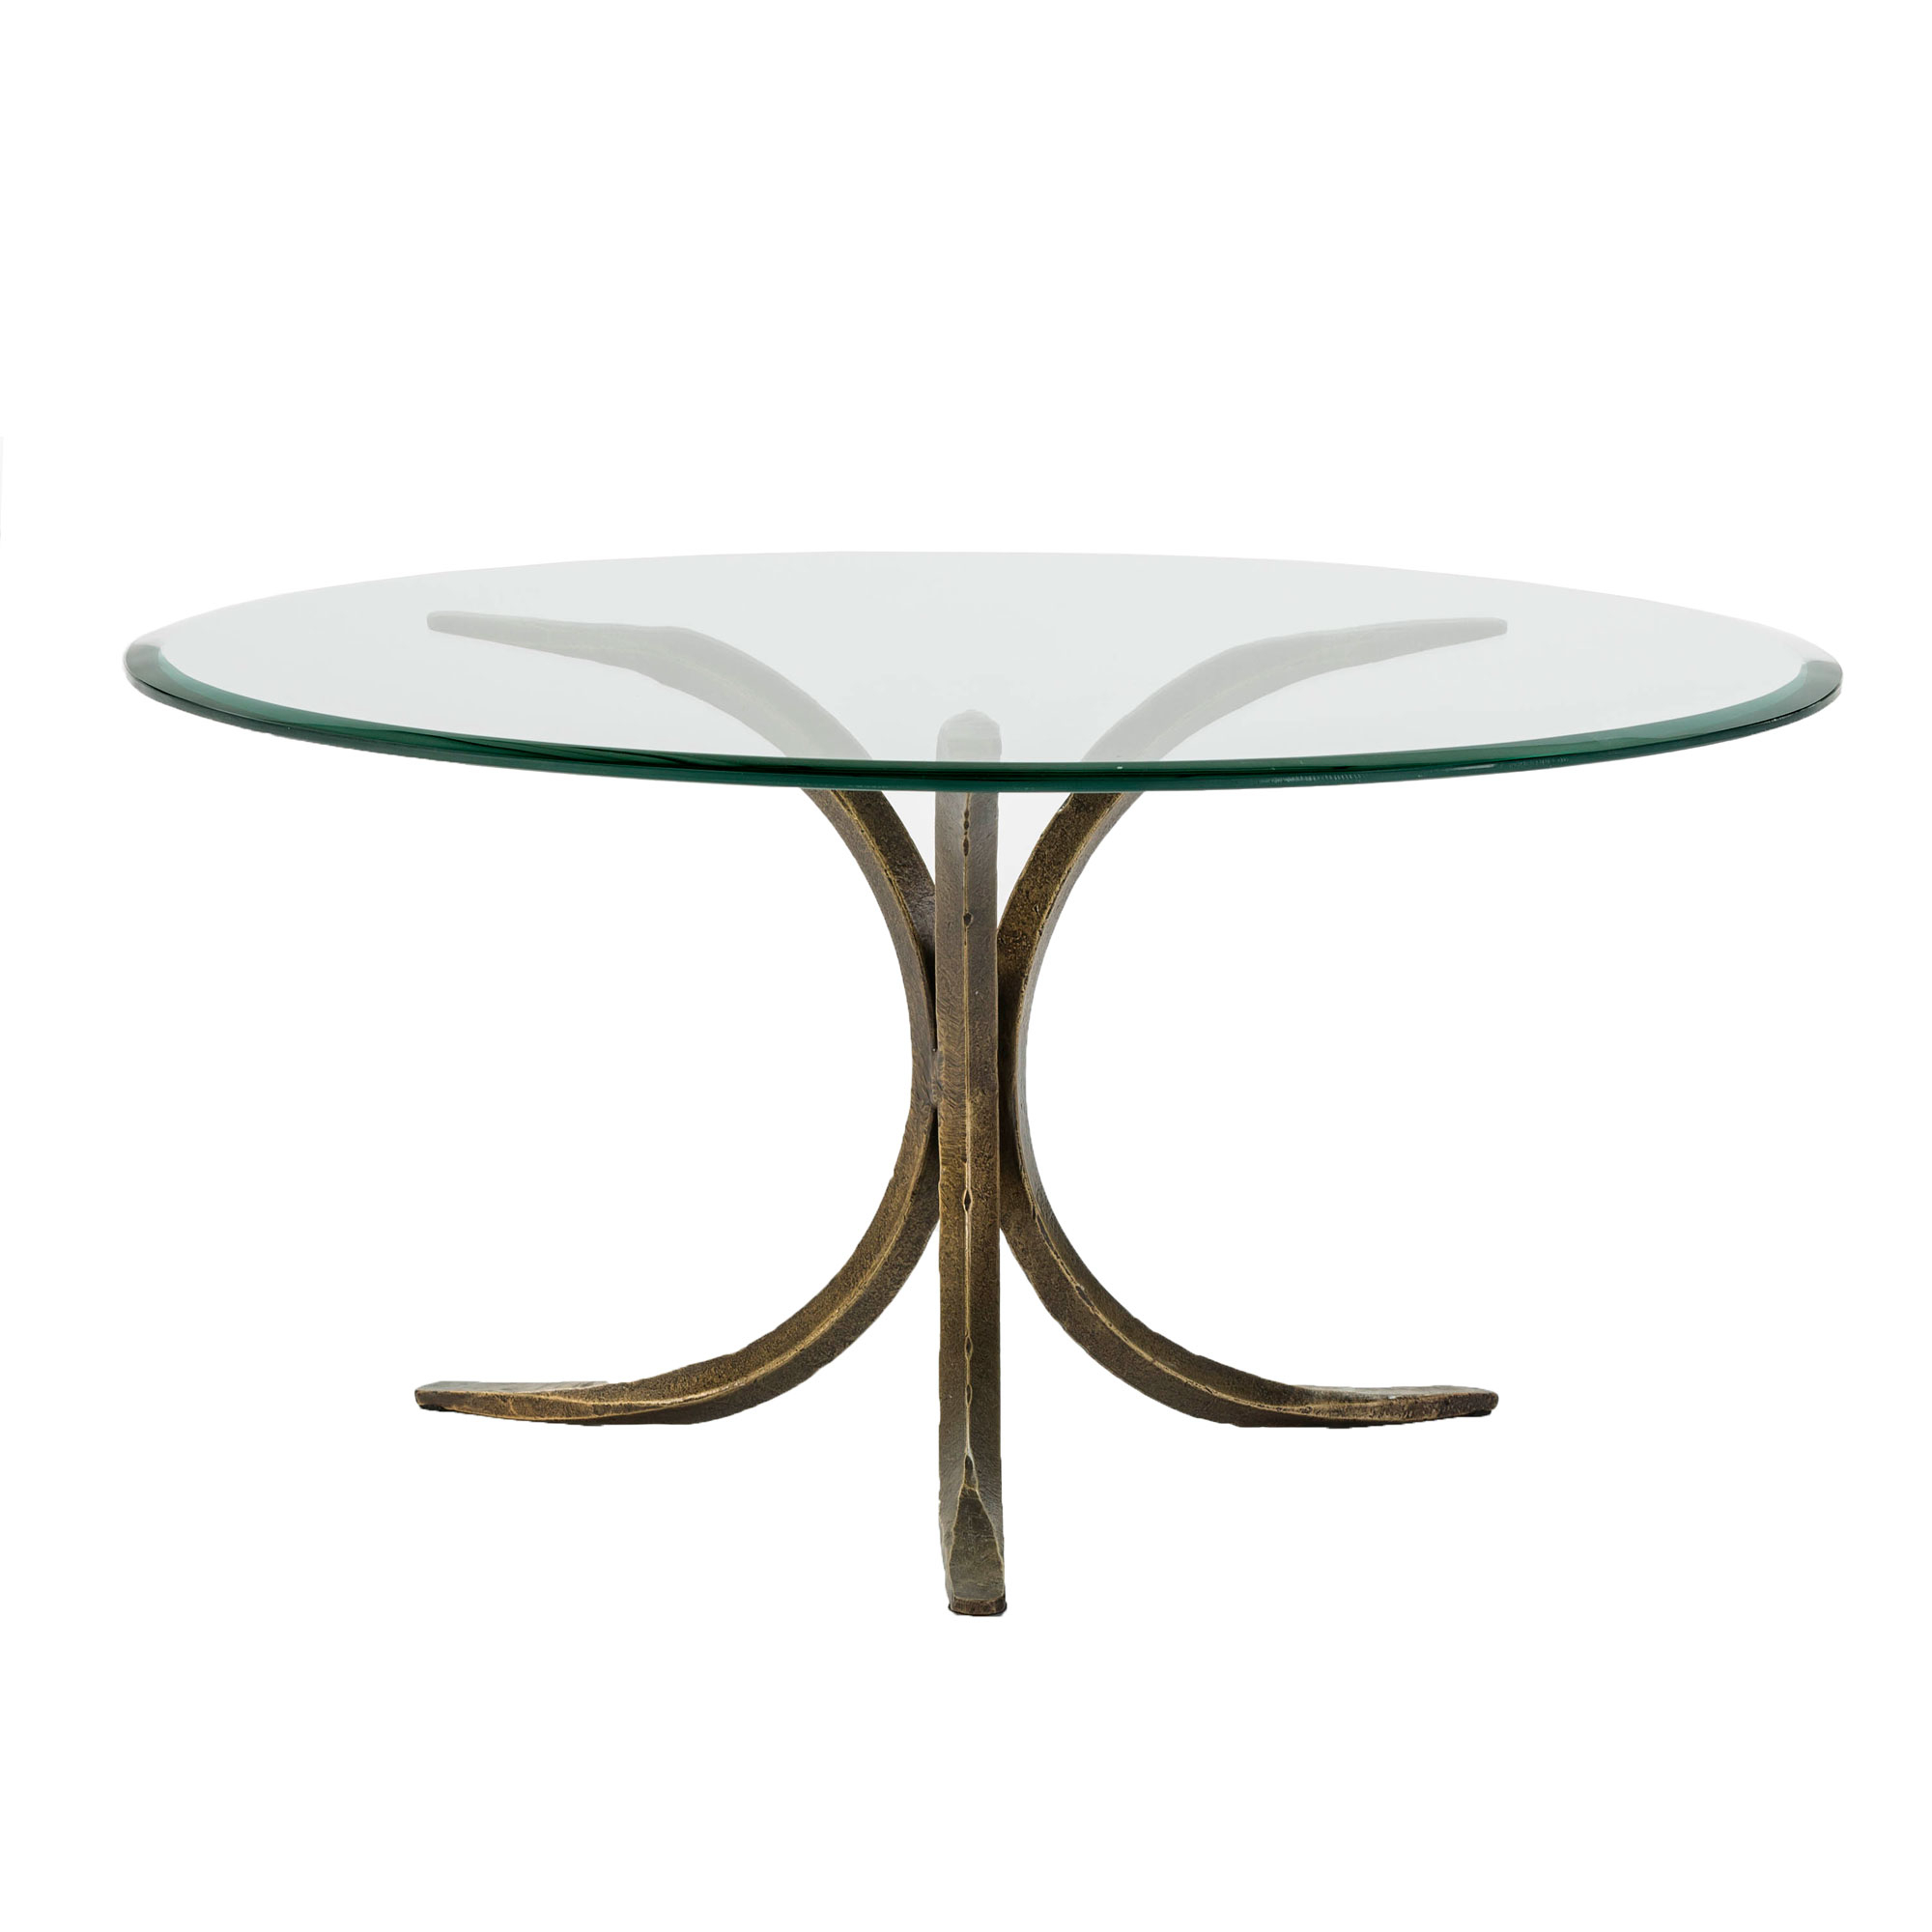 Best And Newest Skeena Coffee Table Within Acacia Dining Tables With Black Rocket Legs (View 24 of 30)